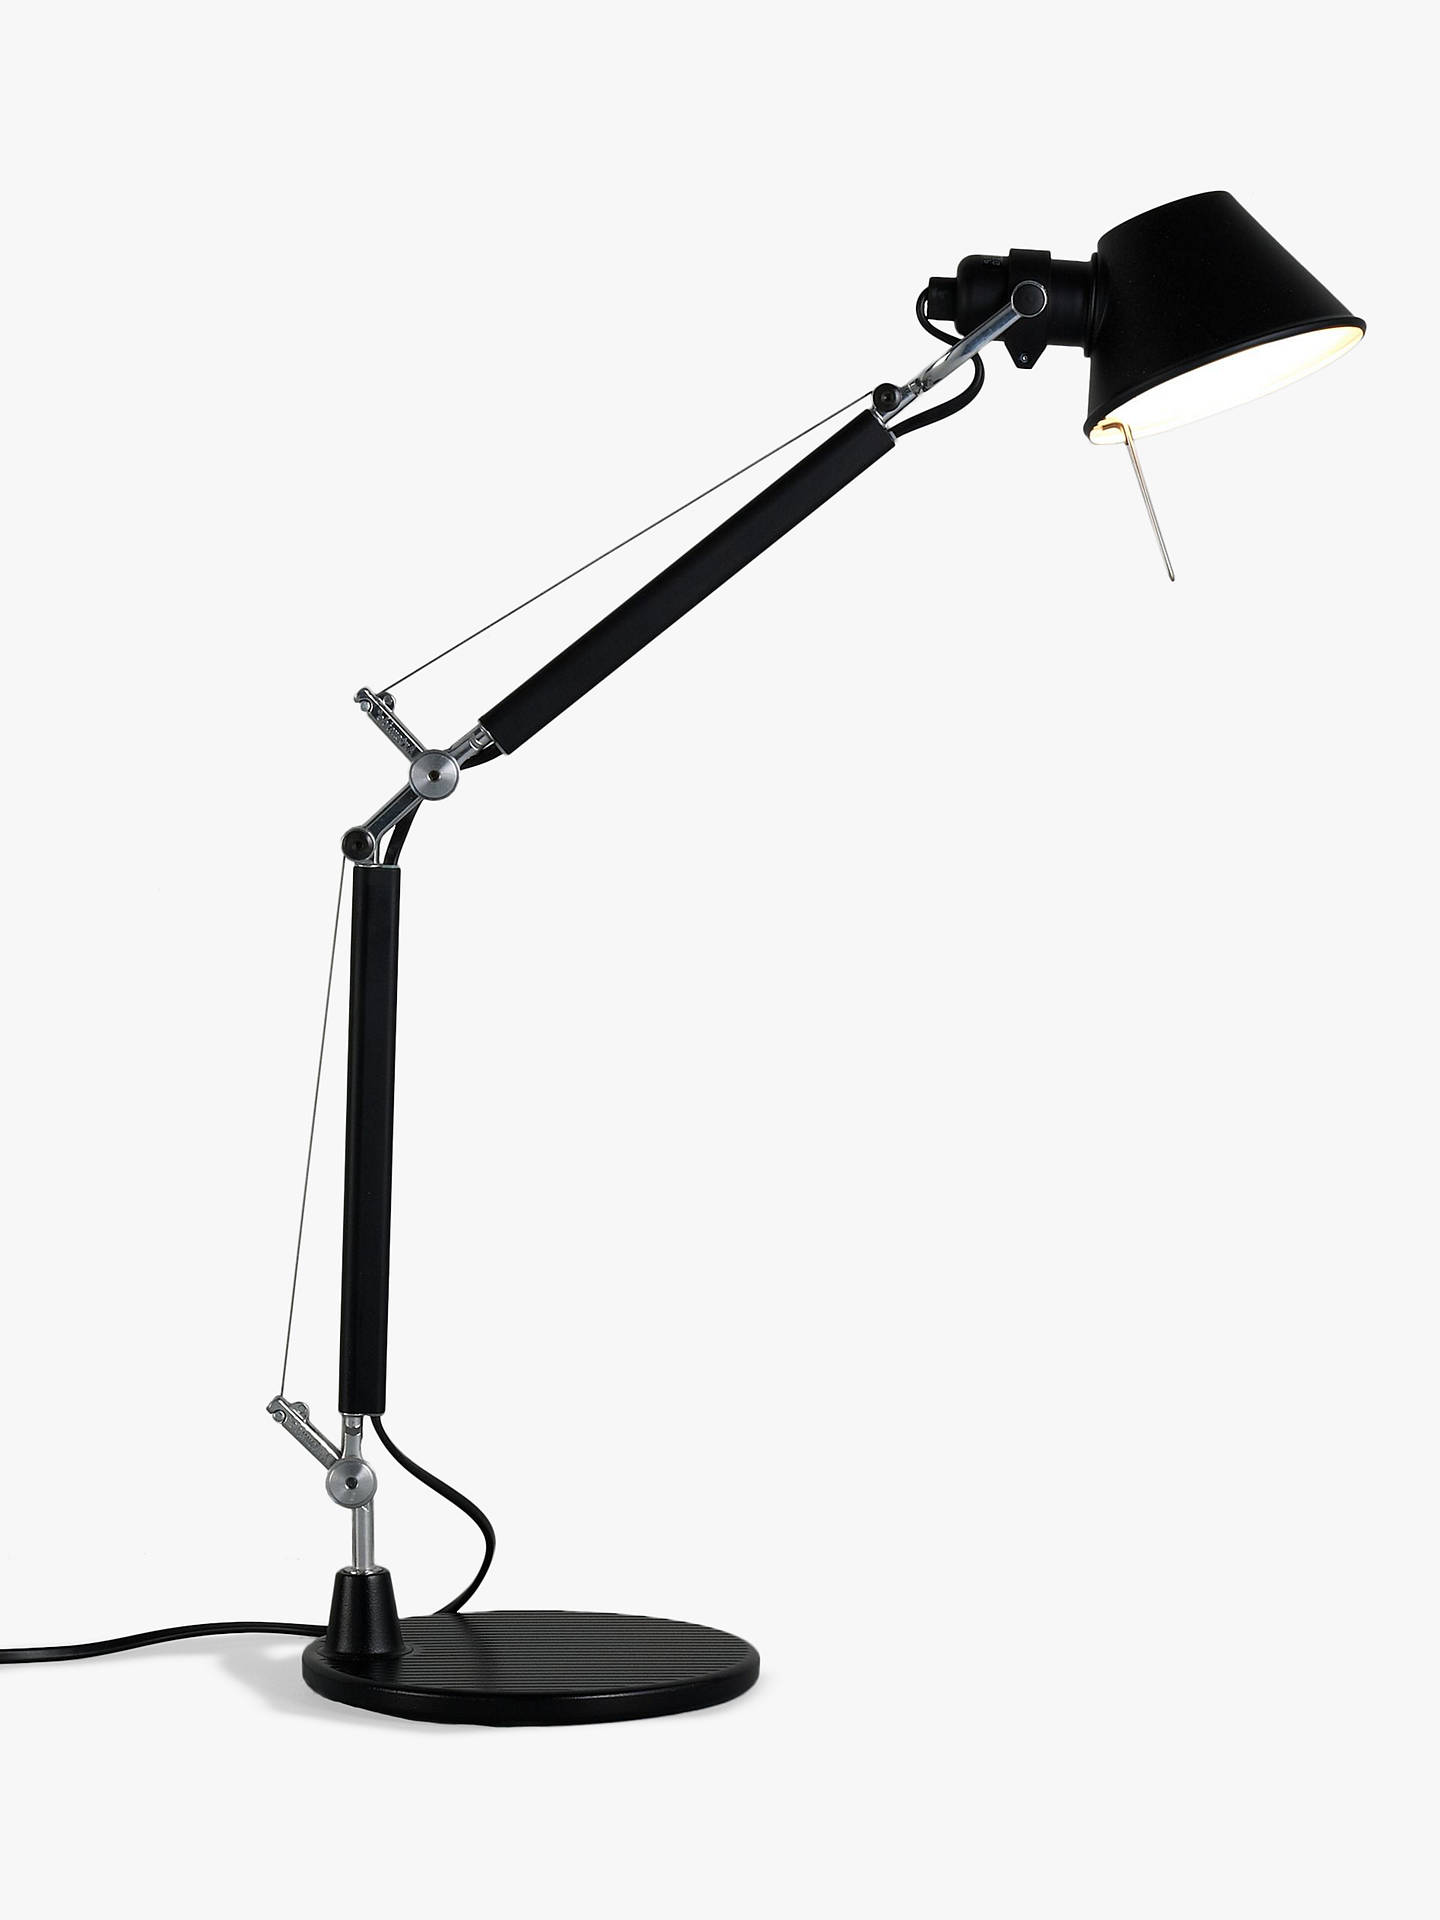 BuyArtemide Tolomeo Micro Desk Lamp, Black Online at johnlewis.com